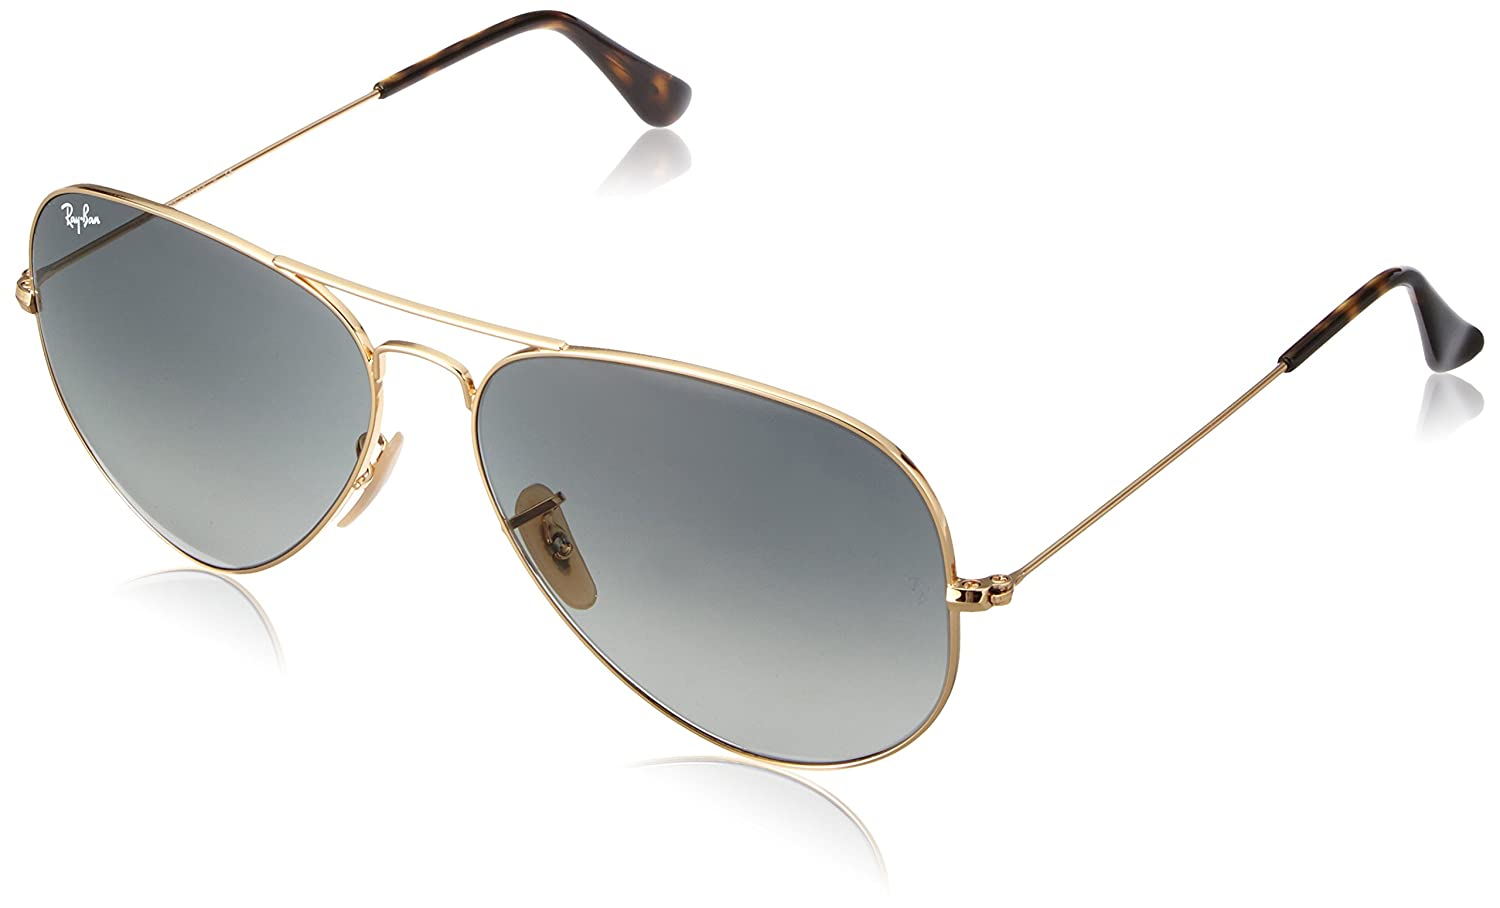 Ray Ban Aviator Large Metal Gafas de sol Aviador Gold